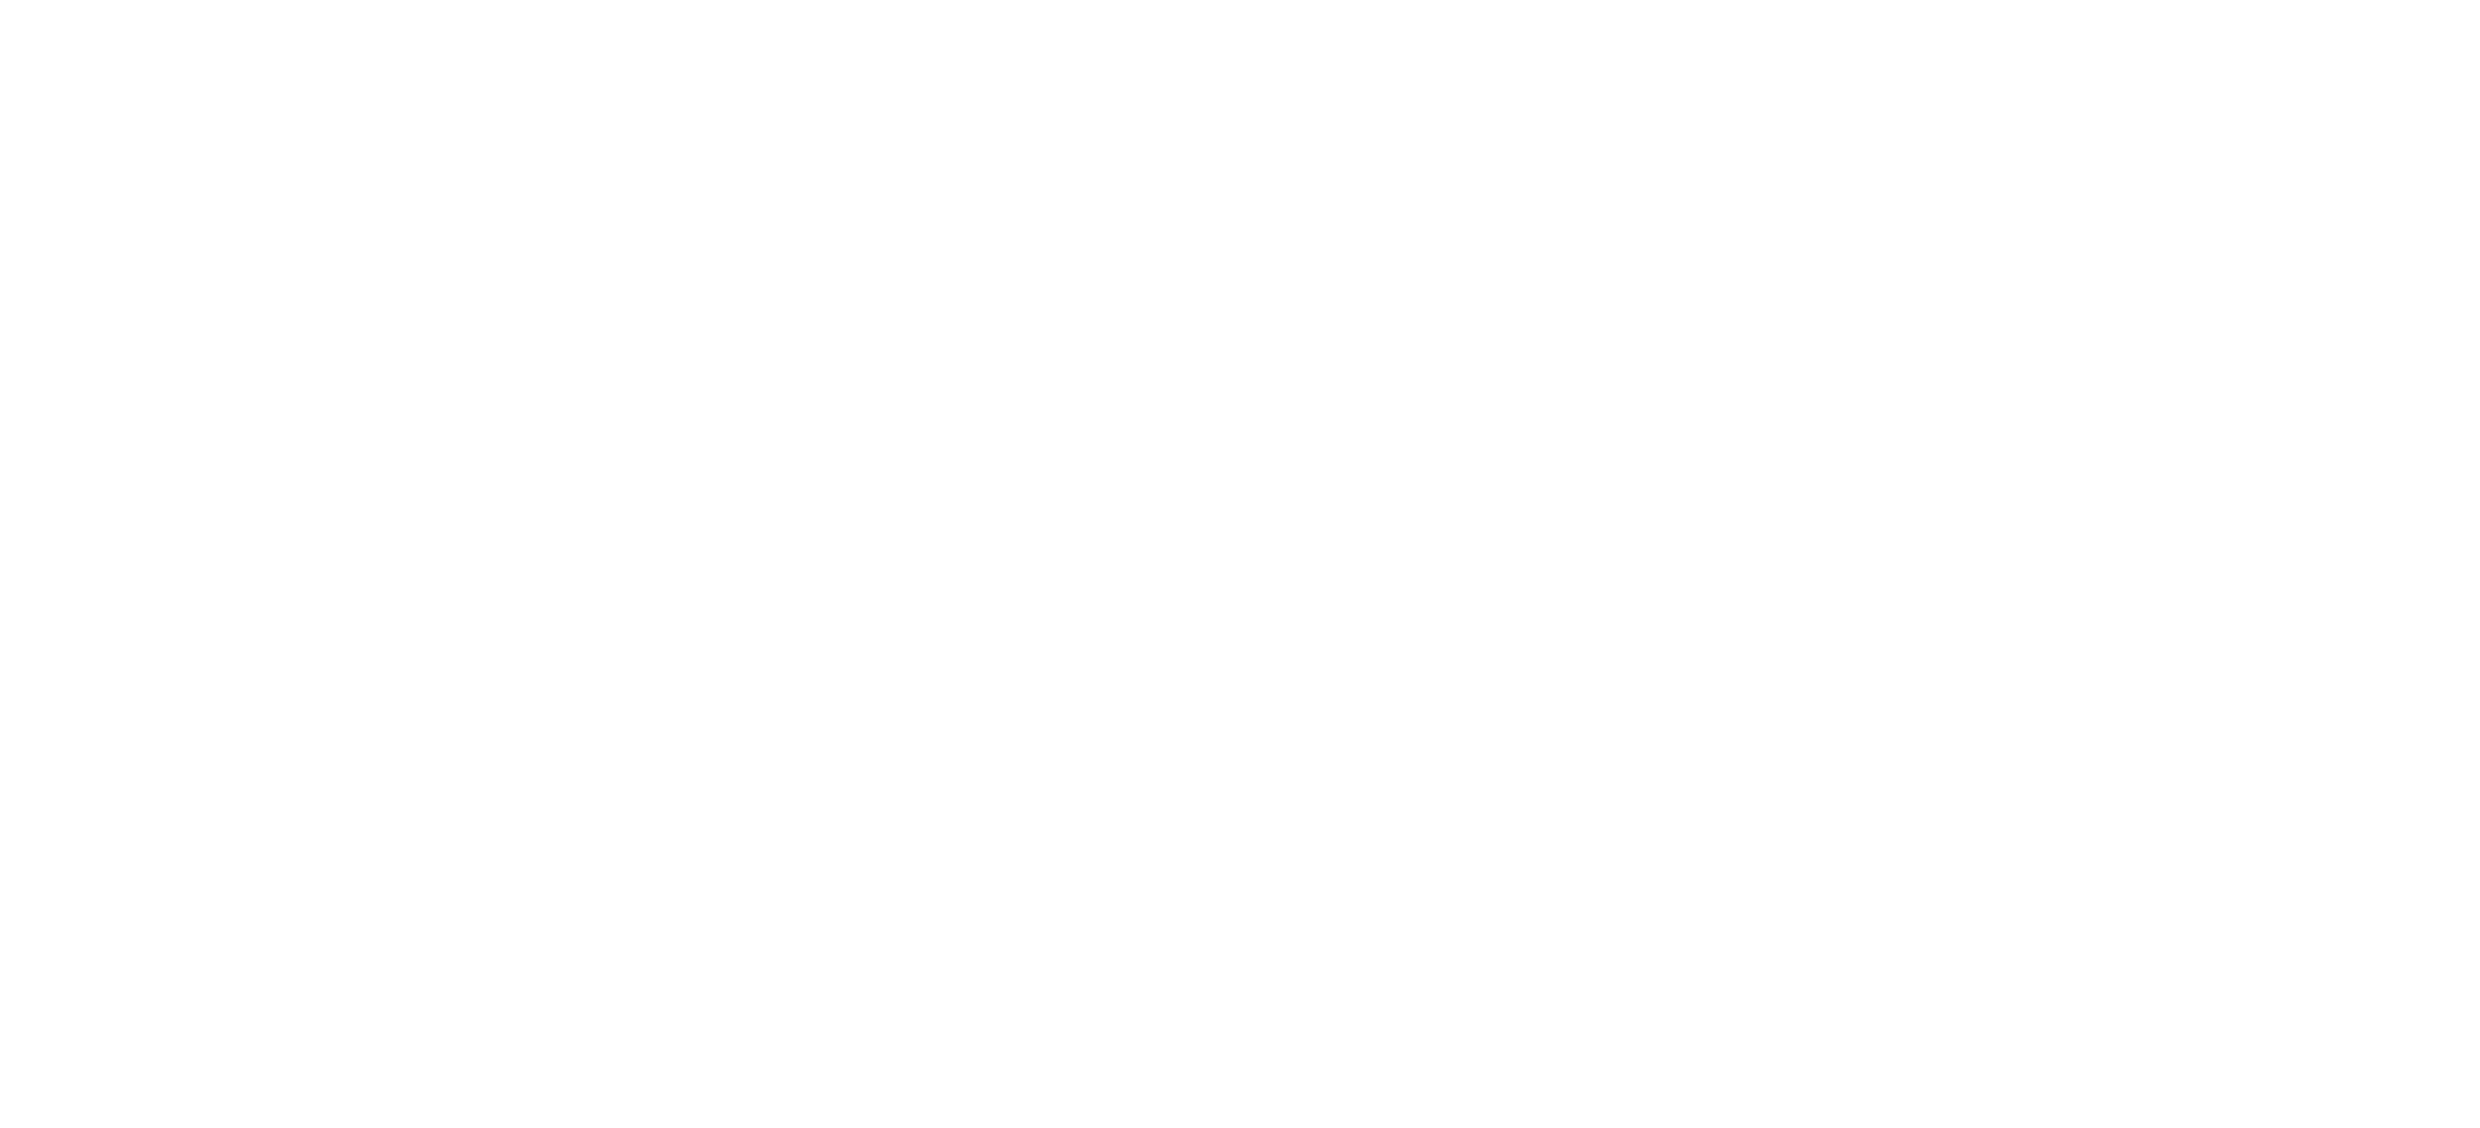 Under The Influence Of...